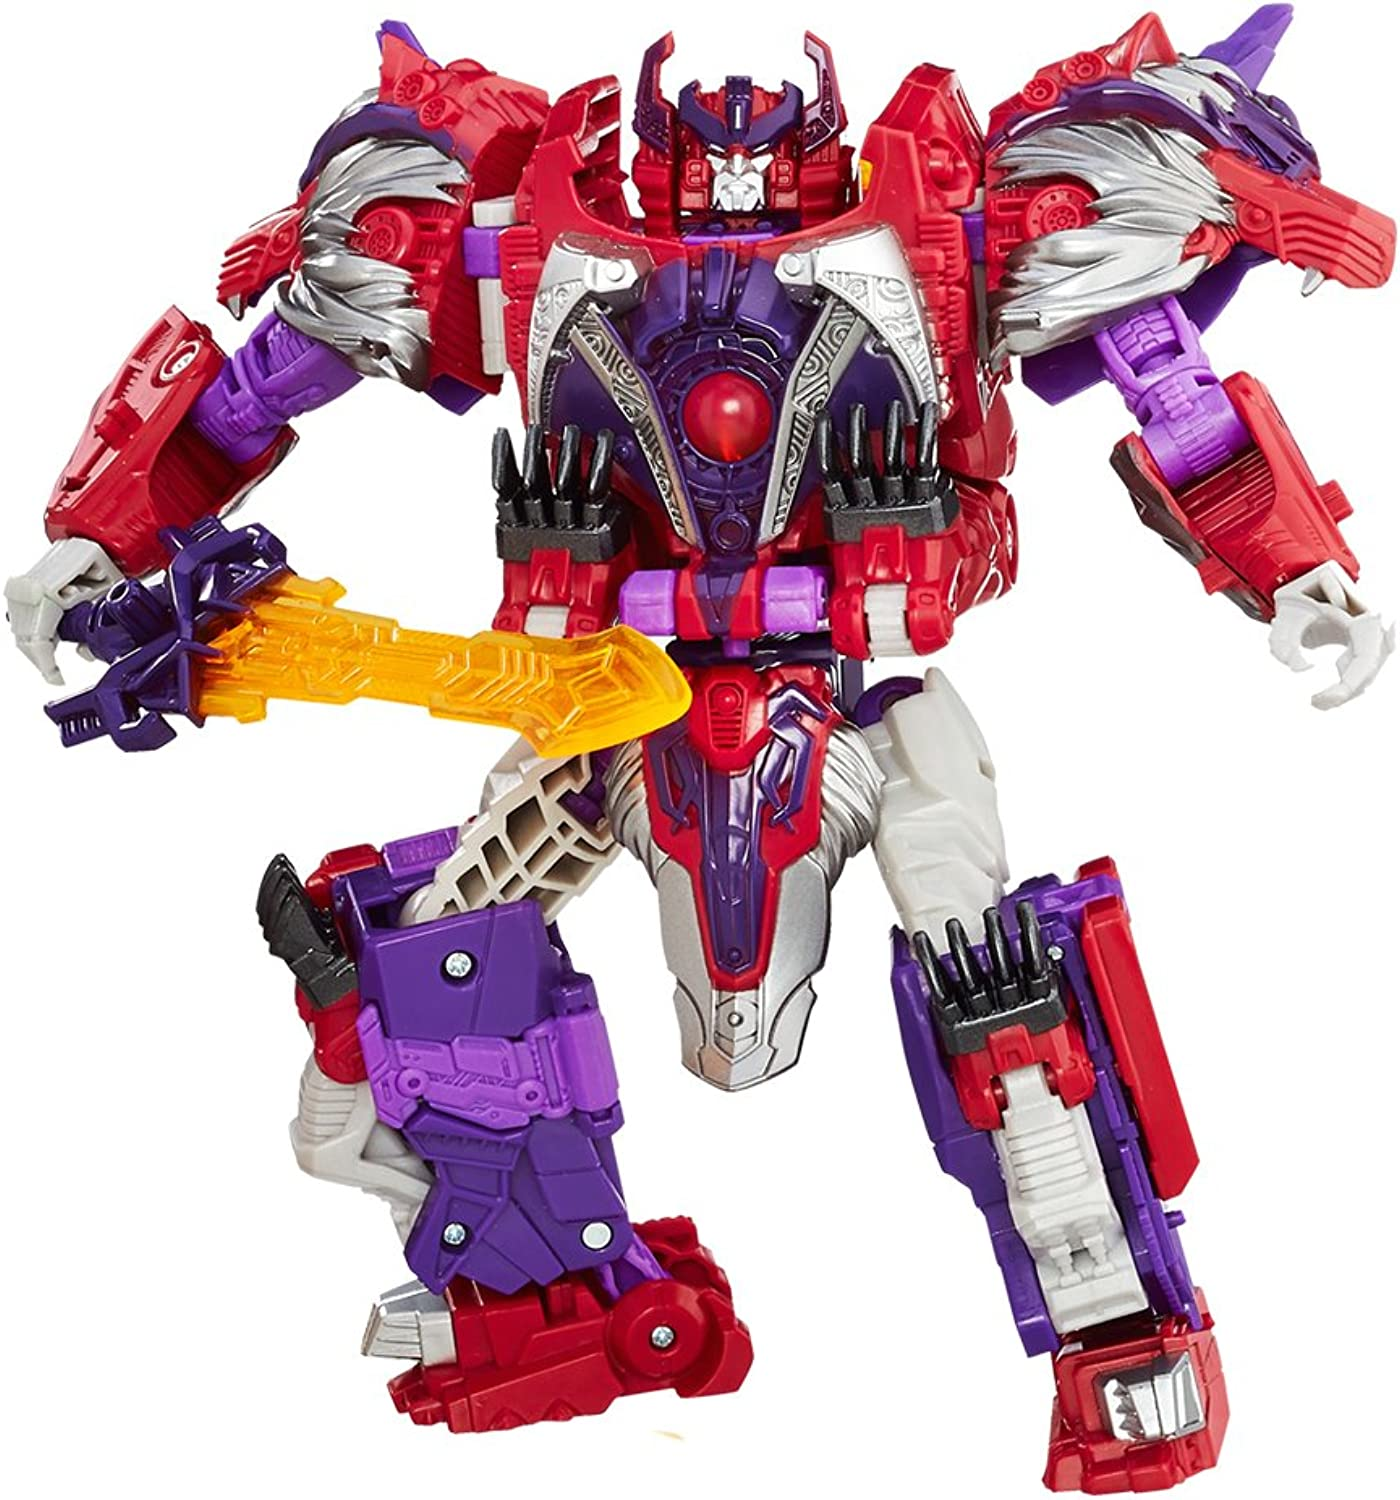 Transformers Generations Titans Return Voyager Class Figure  Autobot Sovereign & Alpha Trion